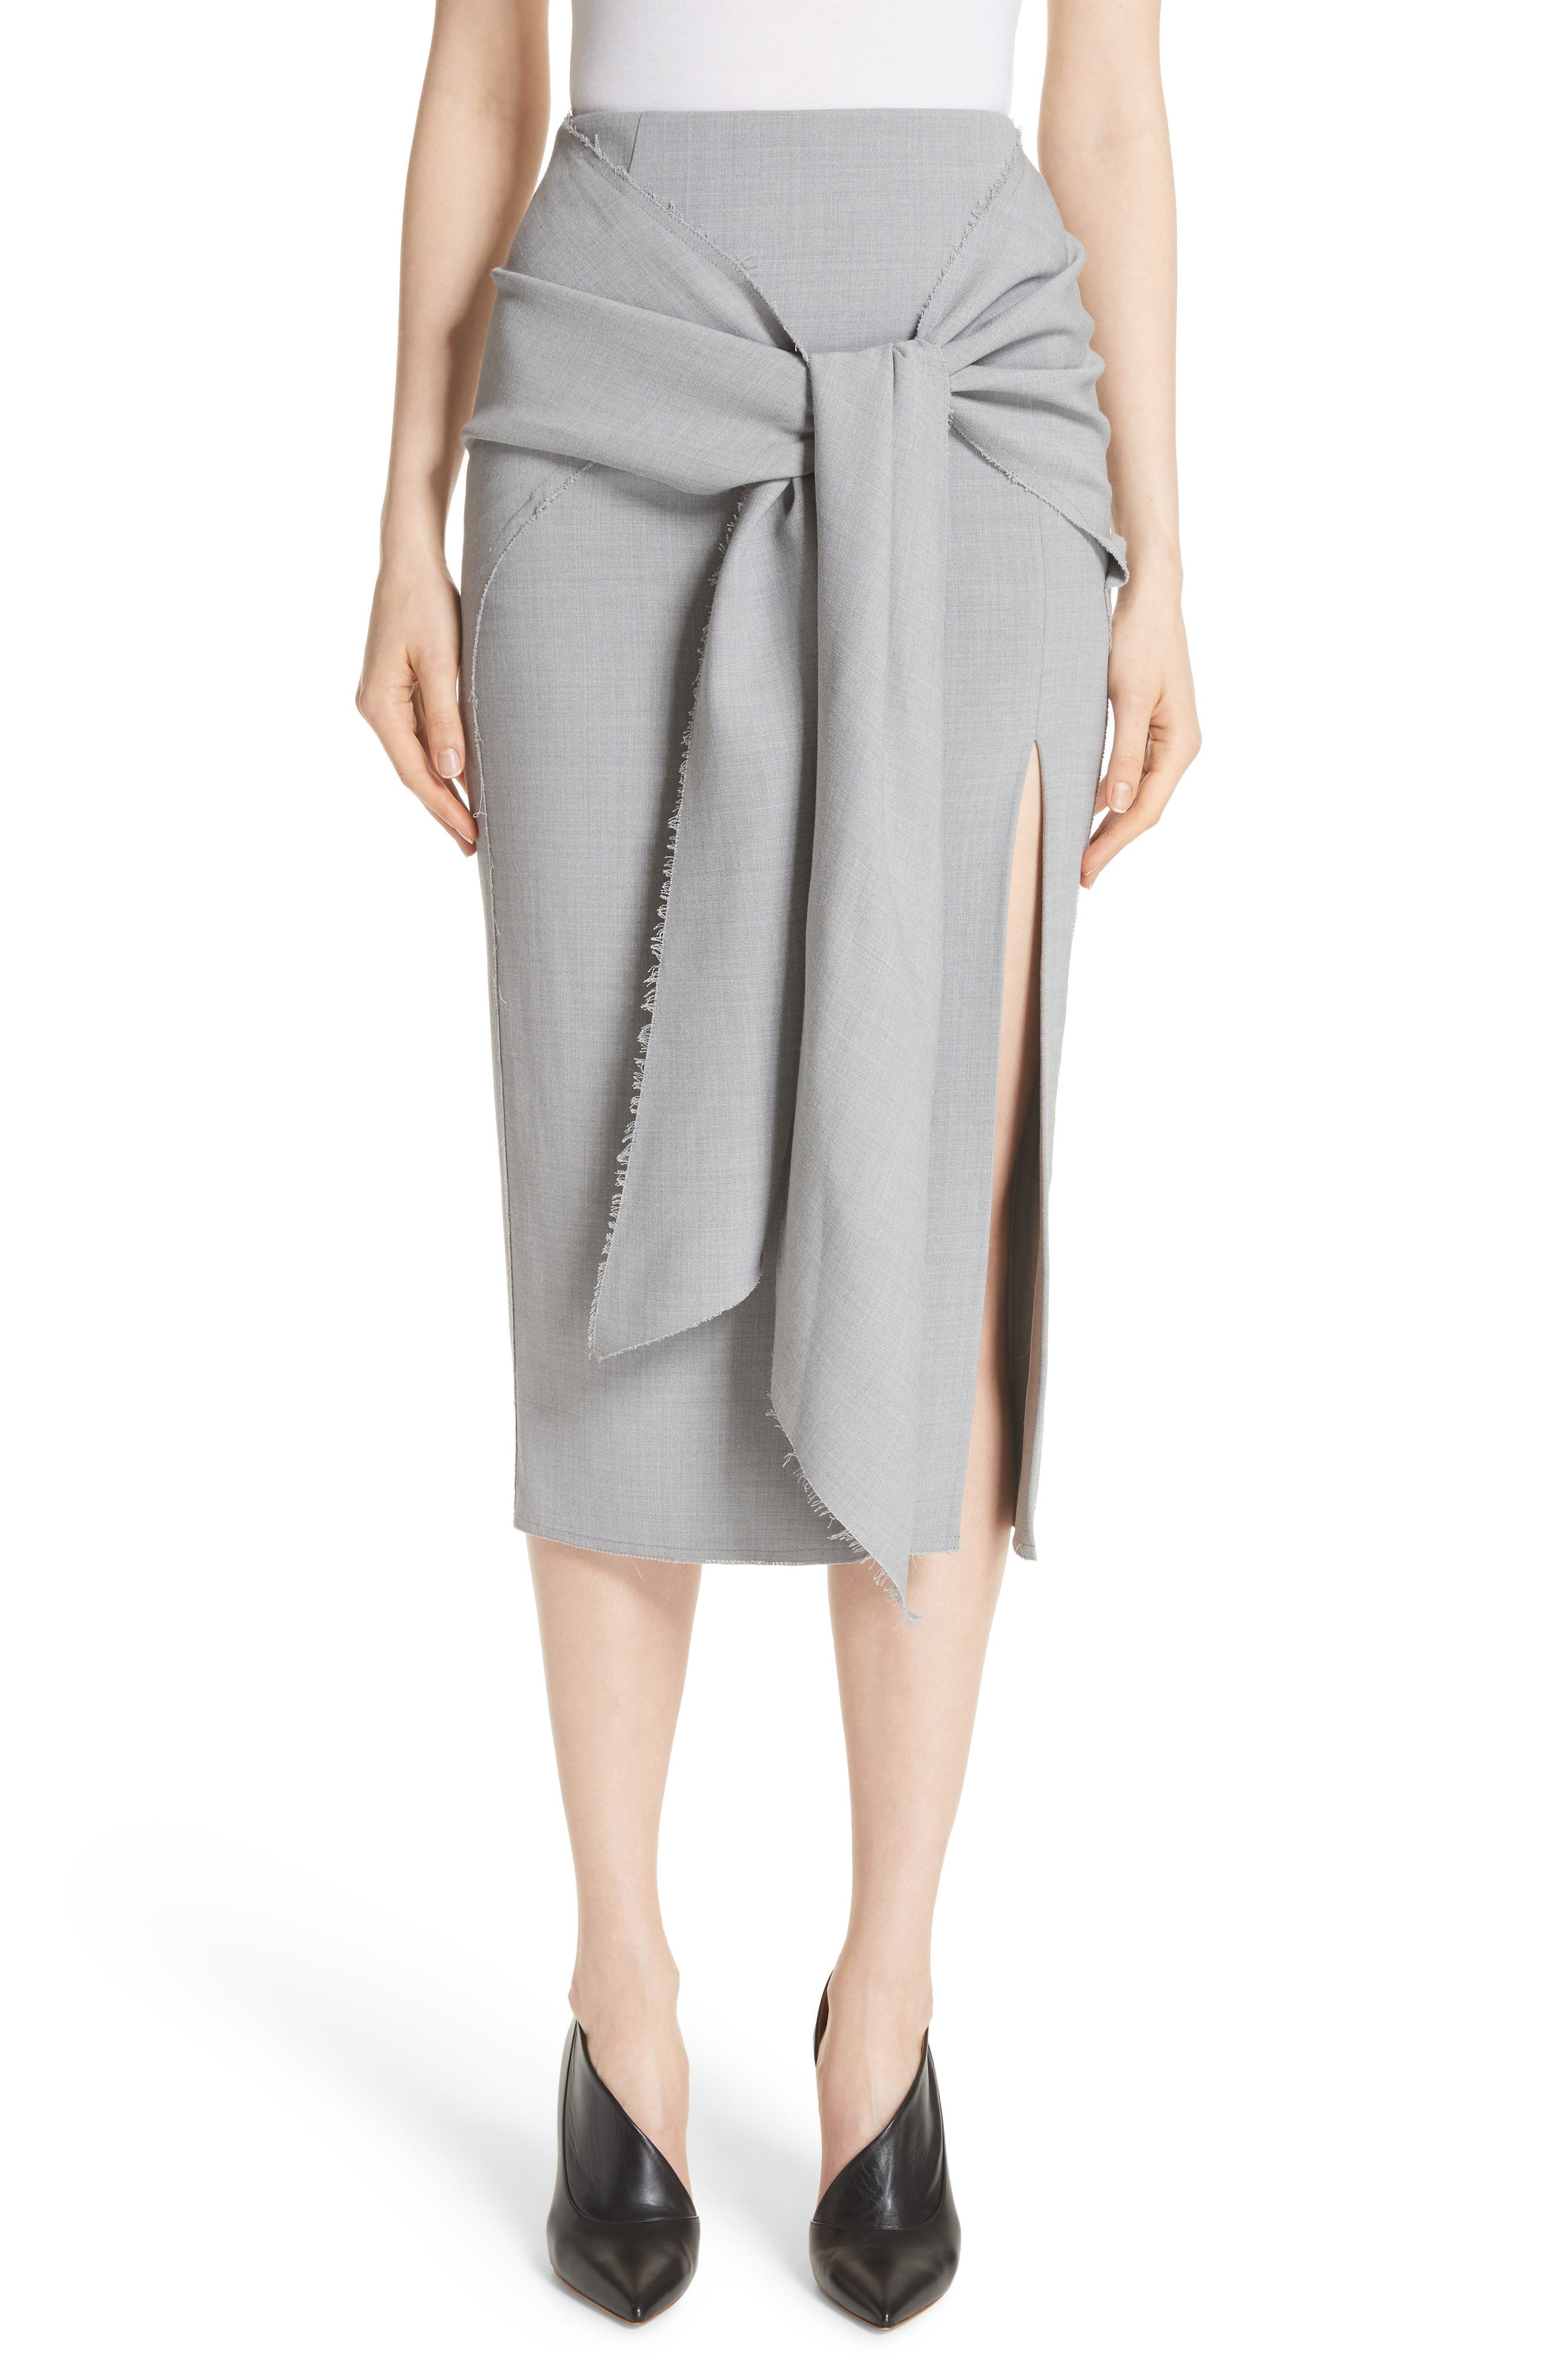 Jason Wu Raw Hem Tie Front Skirt,                             Main thumbnail 1, color,                             058